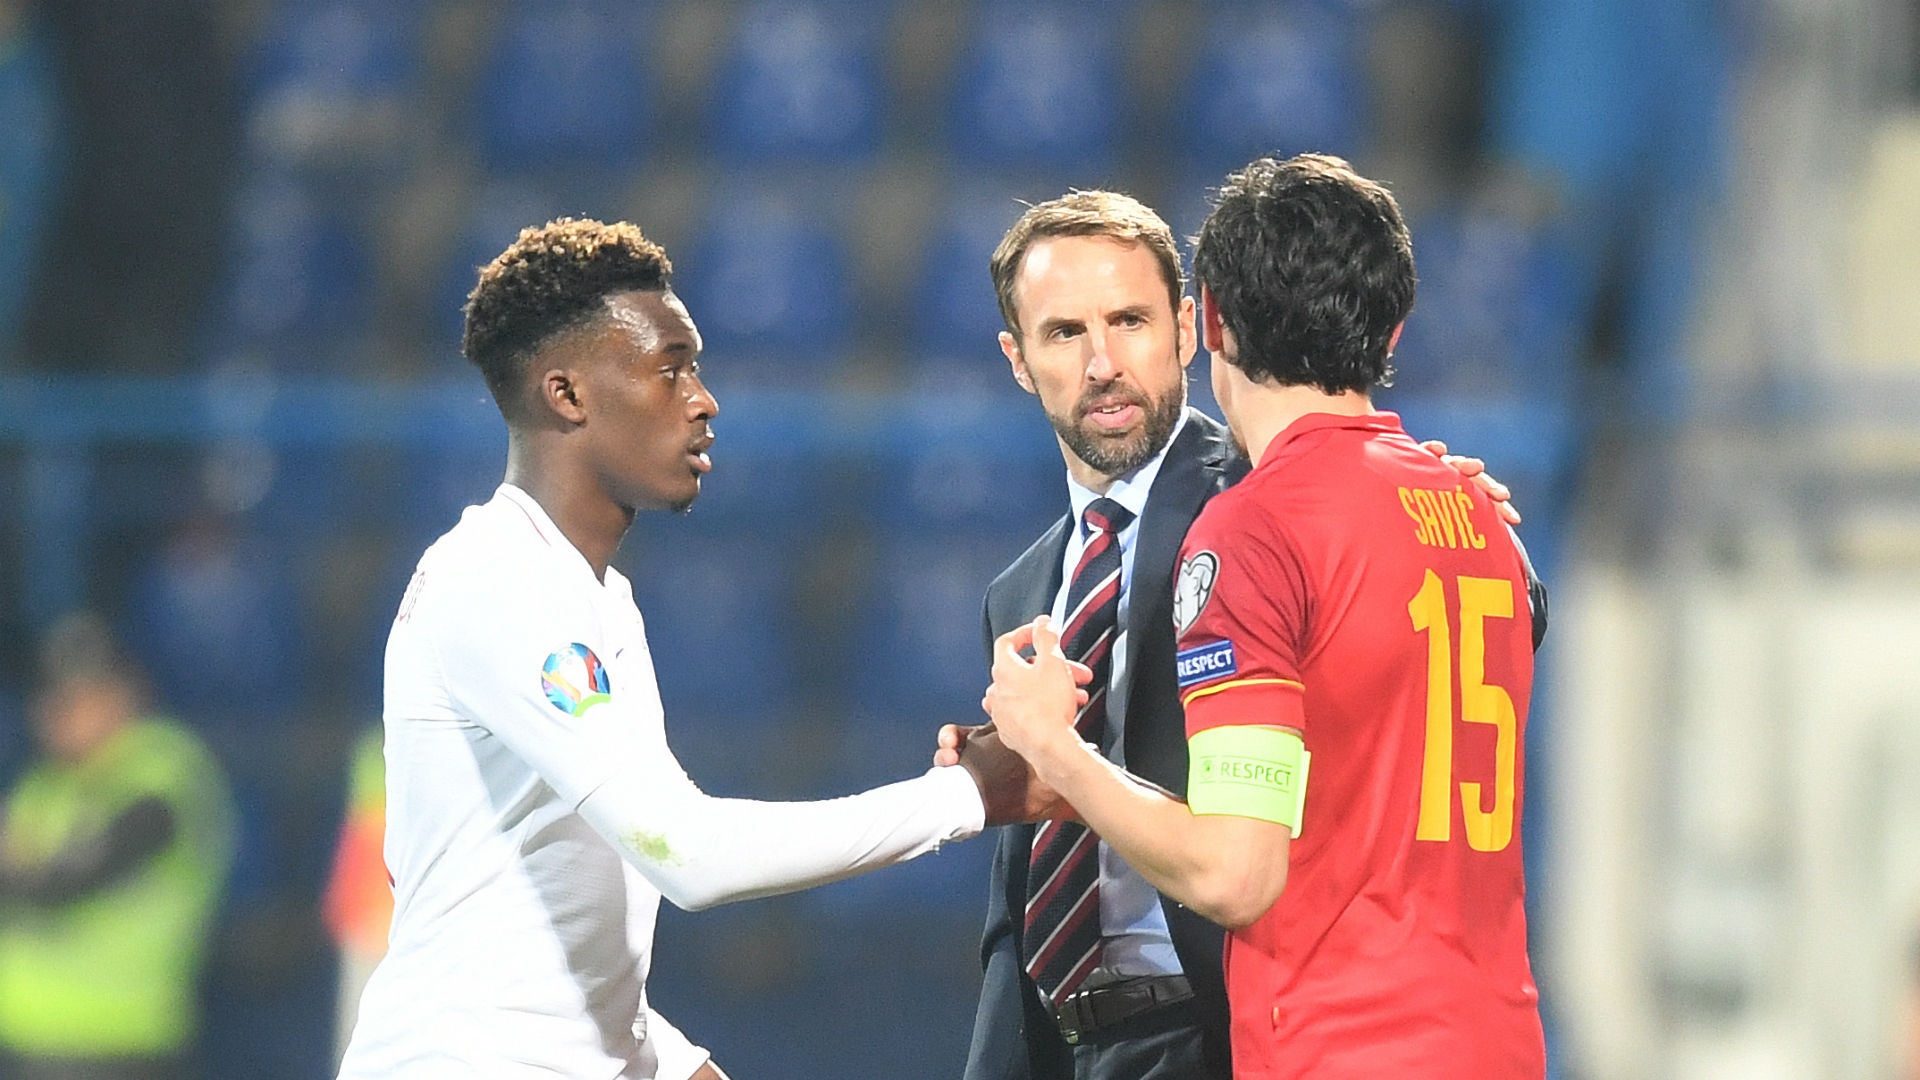 Montenegro handed stadium ban by UEFA after racist abuse of England players